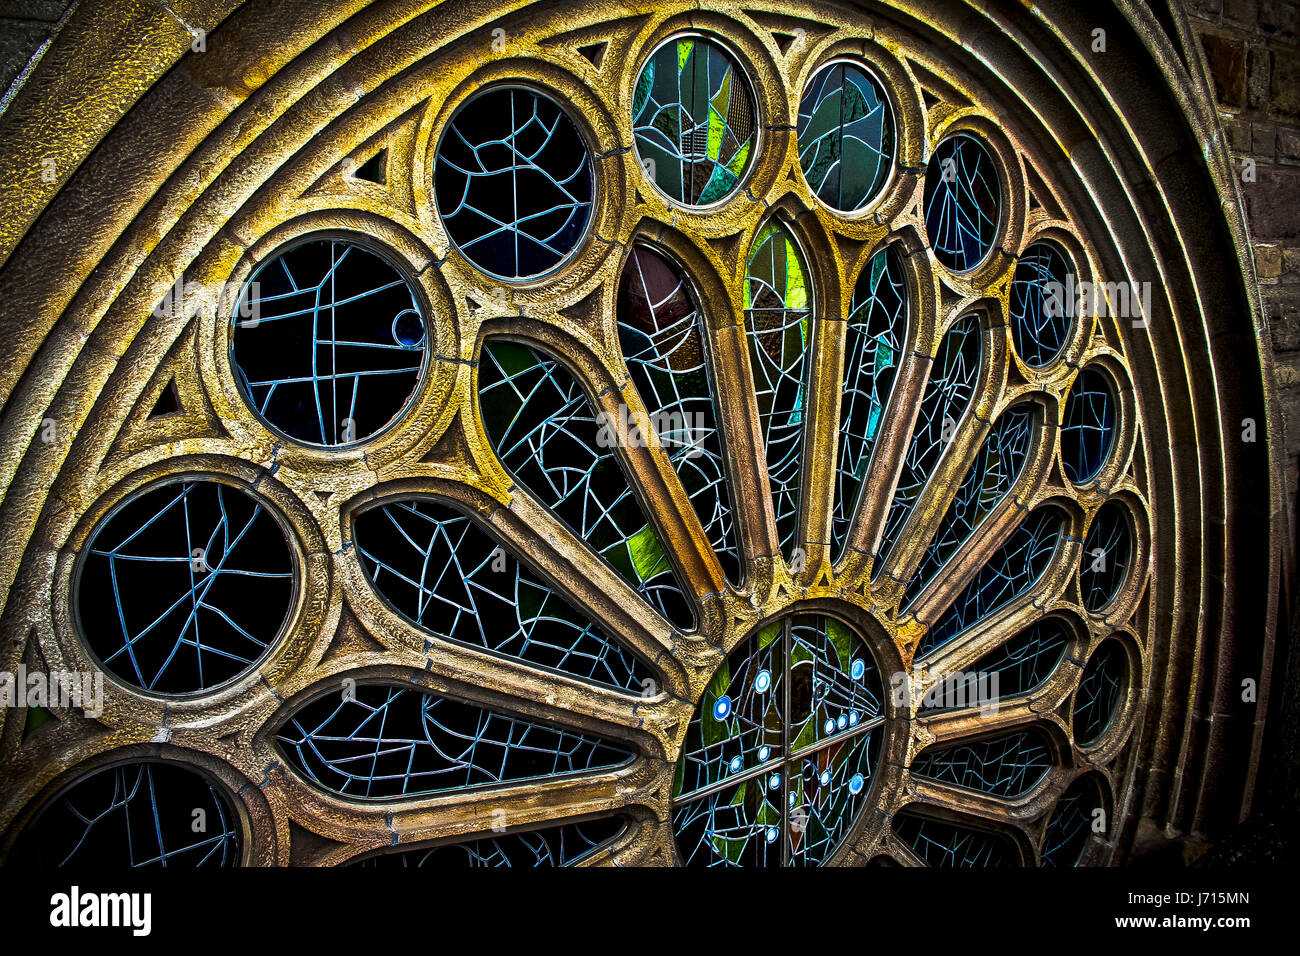 Stained glass windows of the Sagrada Familia Cathedral in Barcelona, Spain - Stock Image